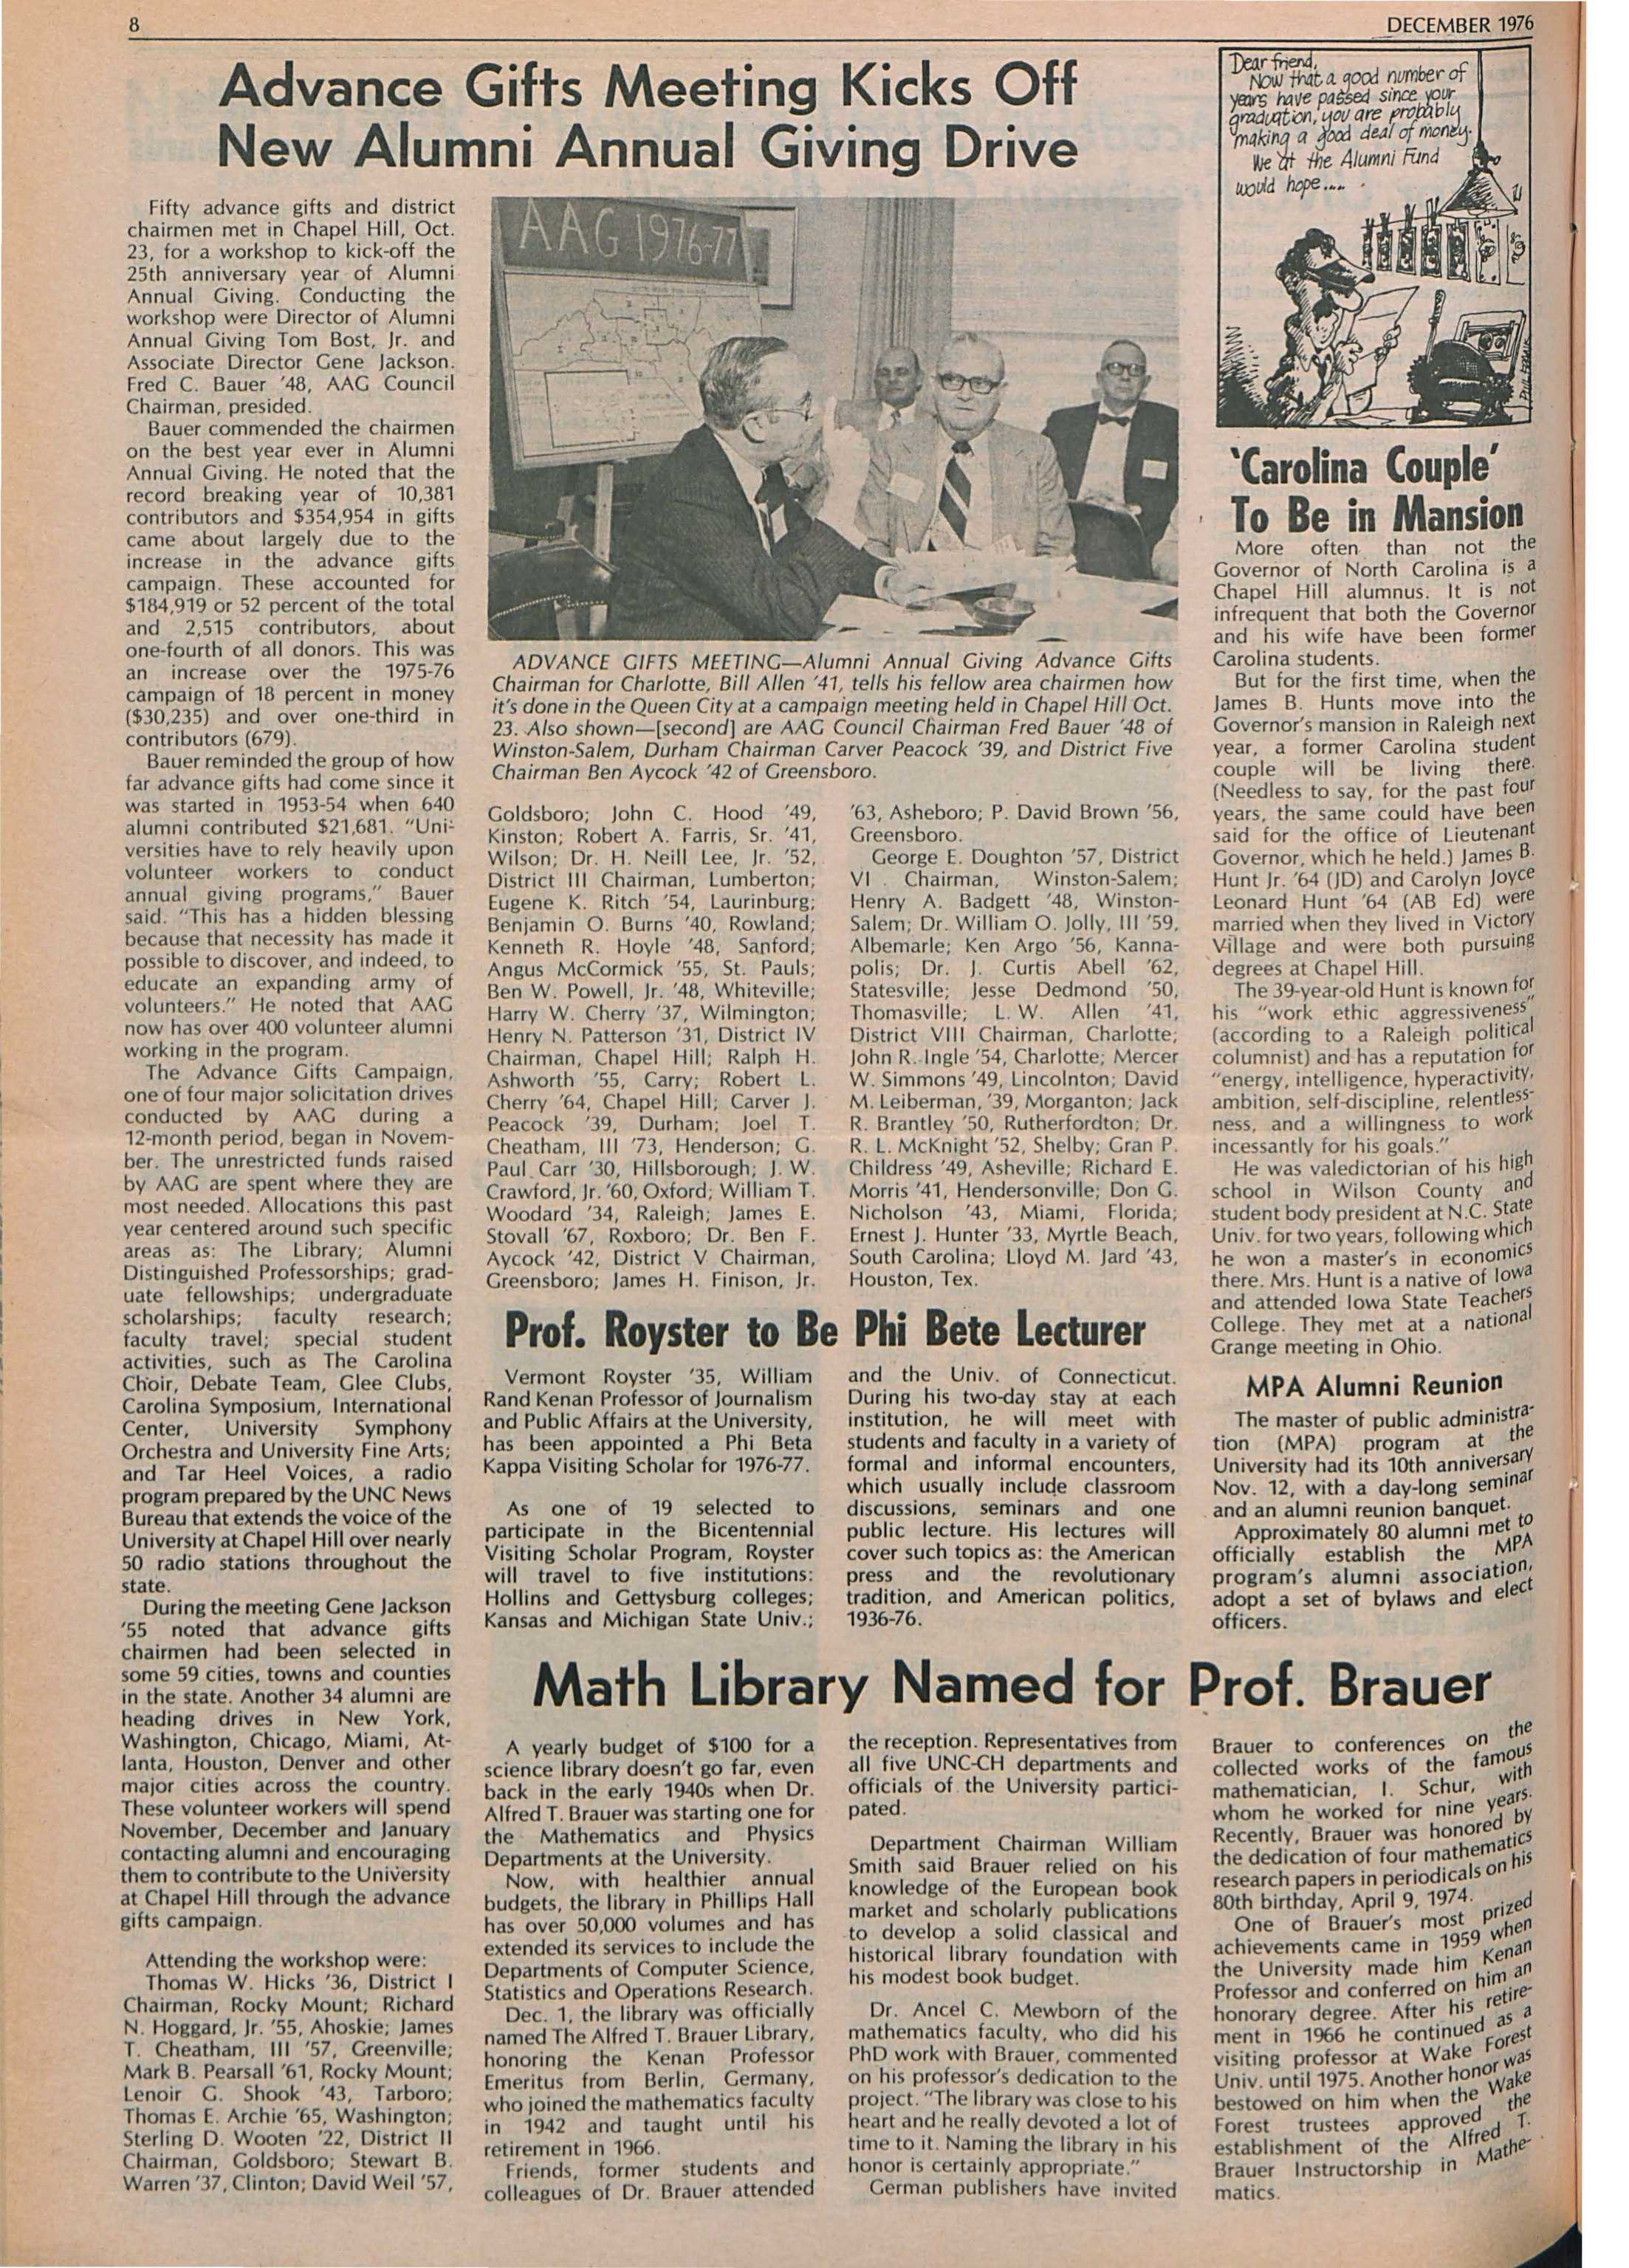 The University Report - December 1976 - page 8